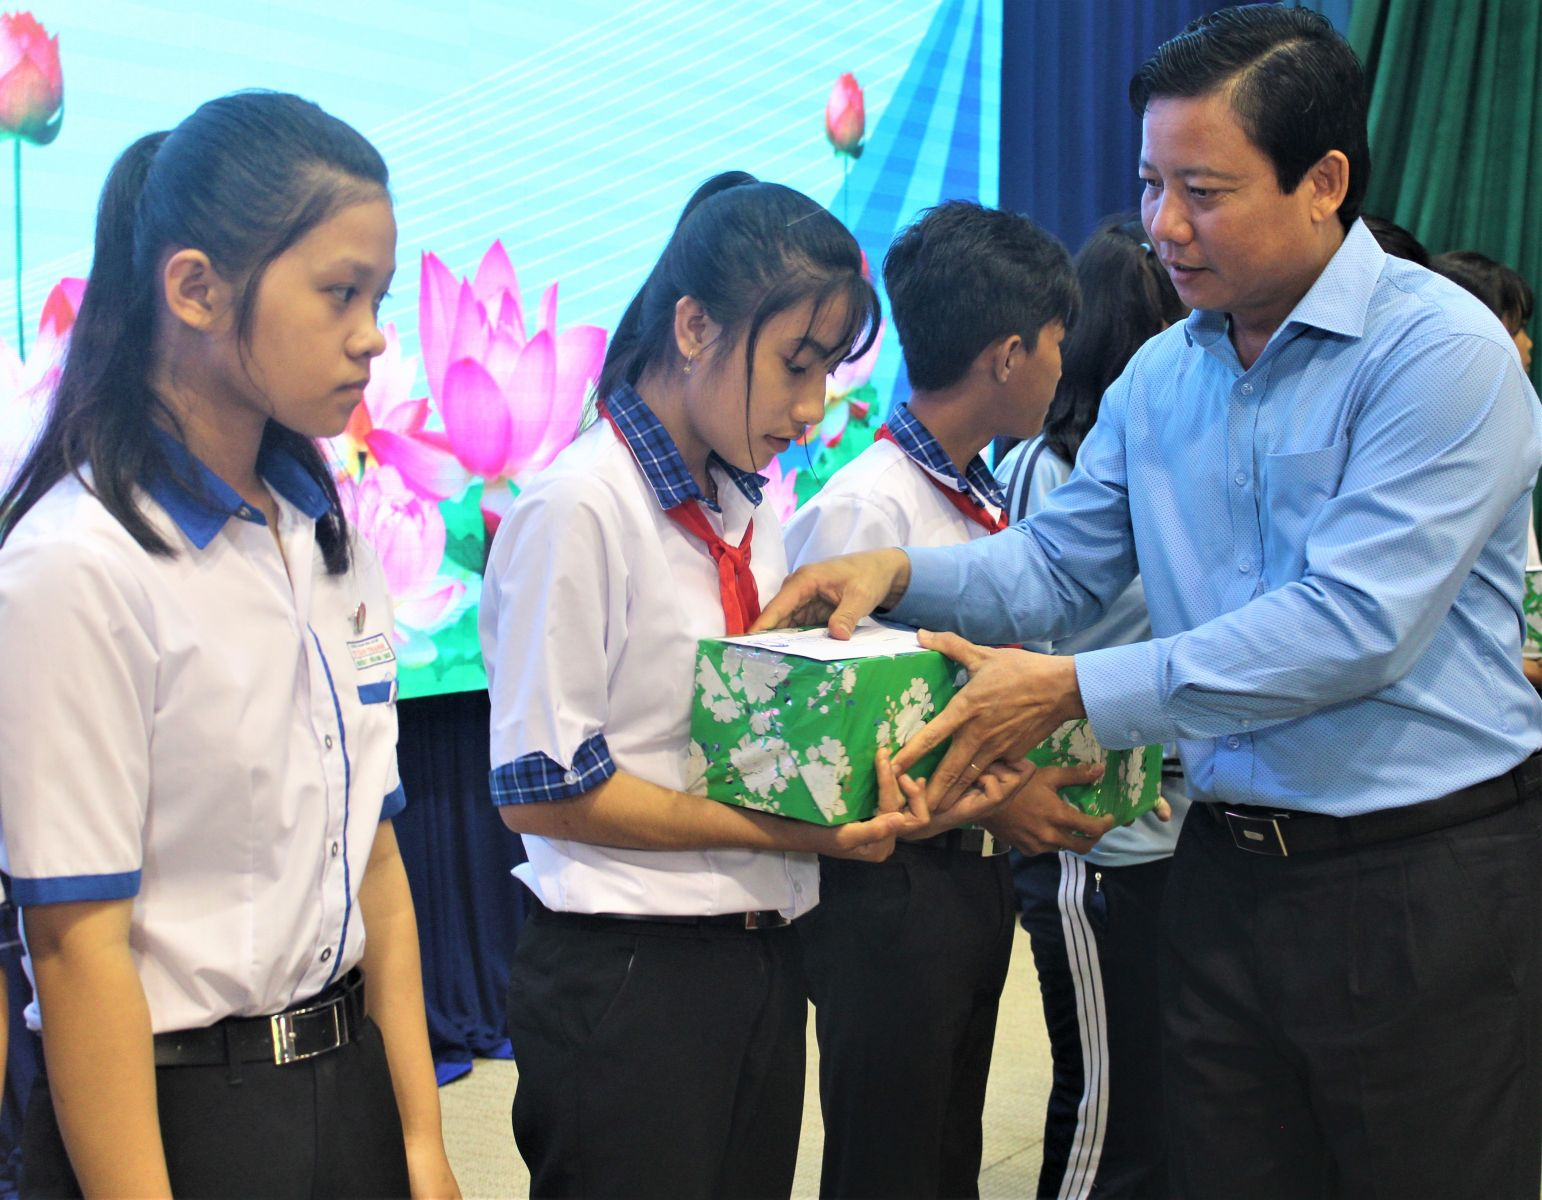 Vice Chairman of Long An provincial People's Committee - Pham Tan Hoa awards scholarships to children in extremely difficult circumstances